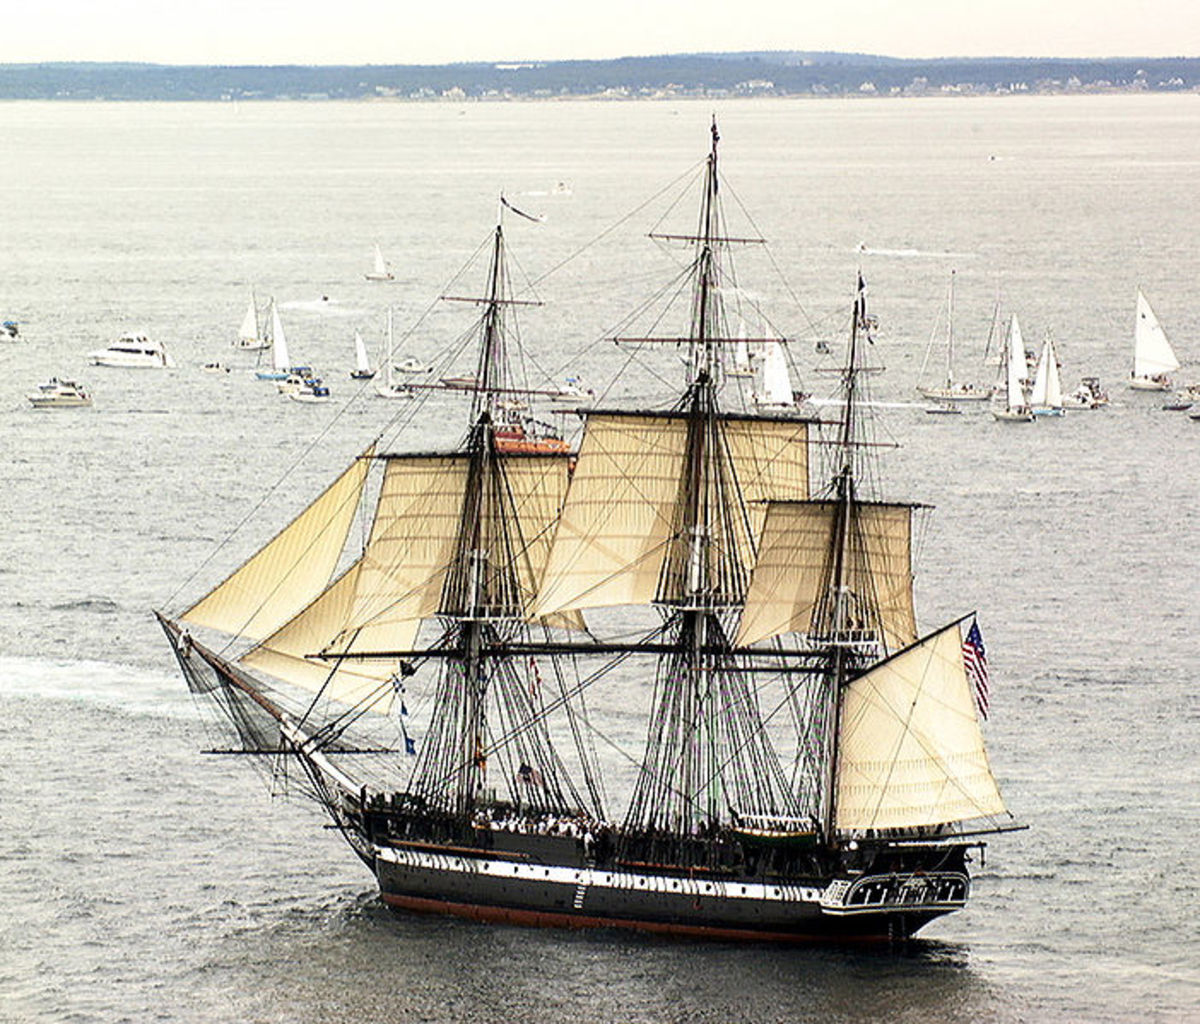 USS Constitution sailing near the Fort Orange Archeological Site.